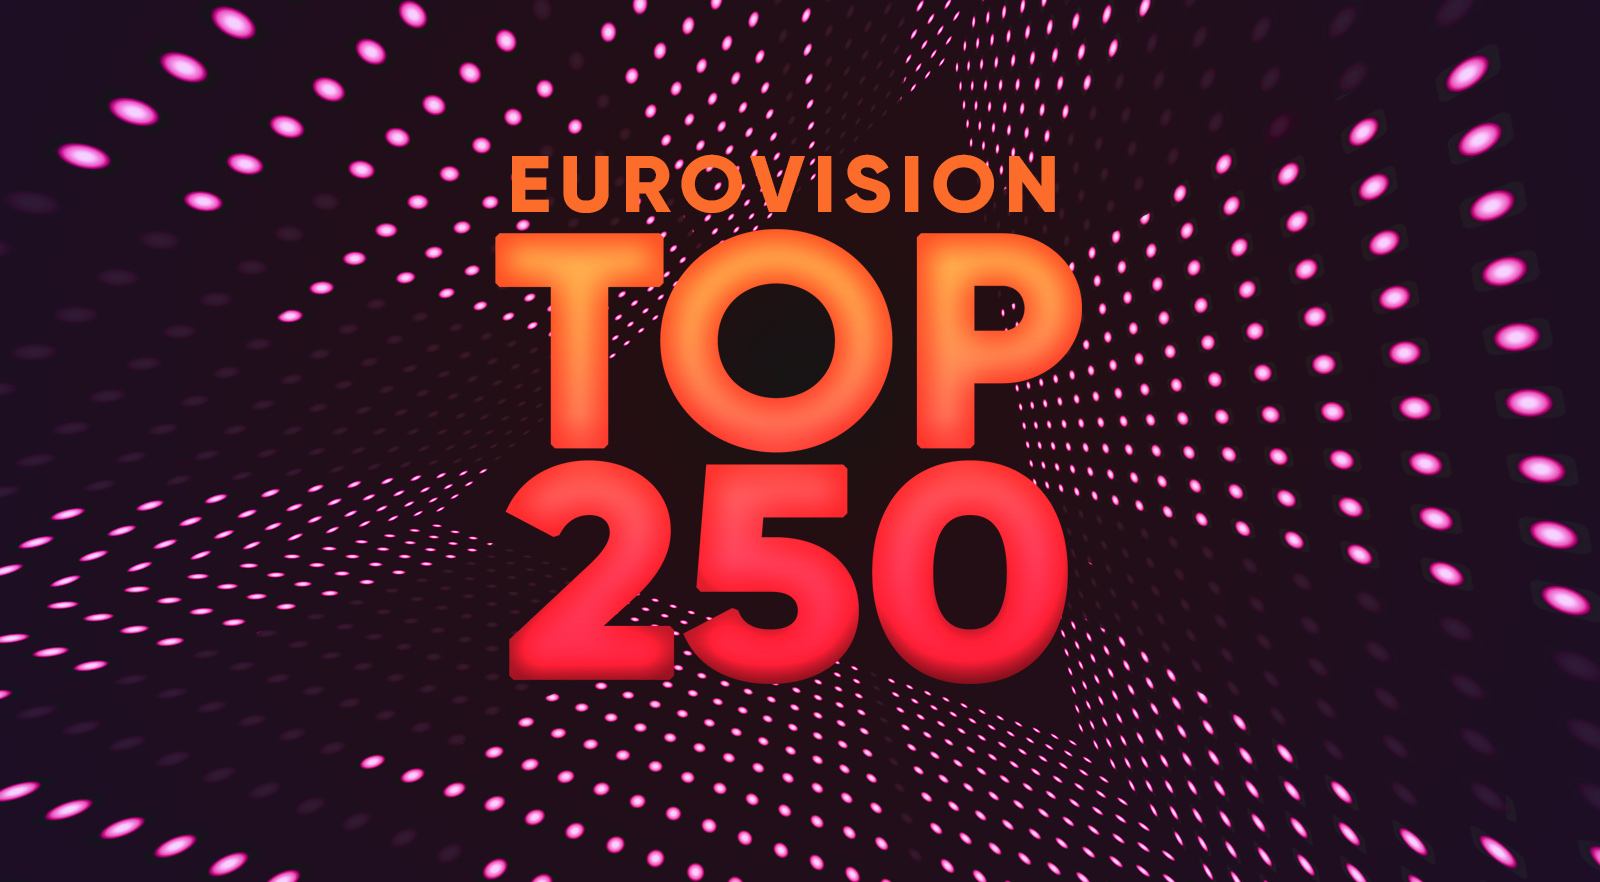 3a0aae7f066 Top 250 2018 – Songfestival.be